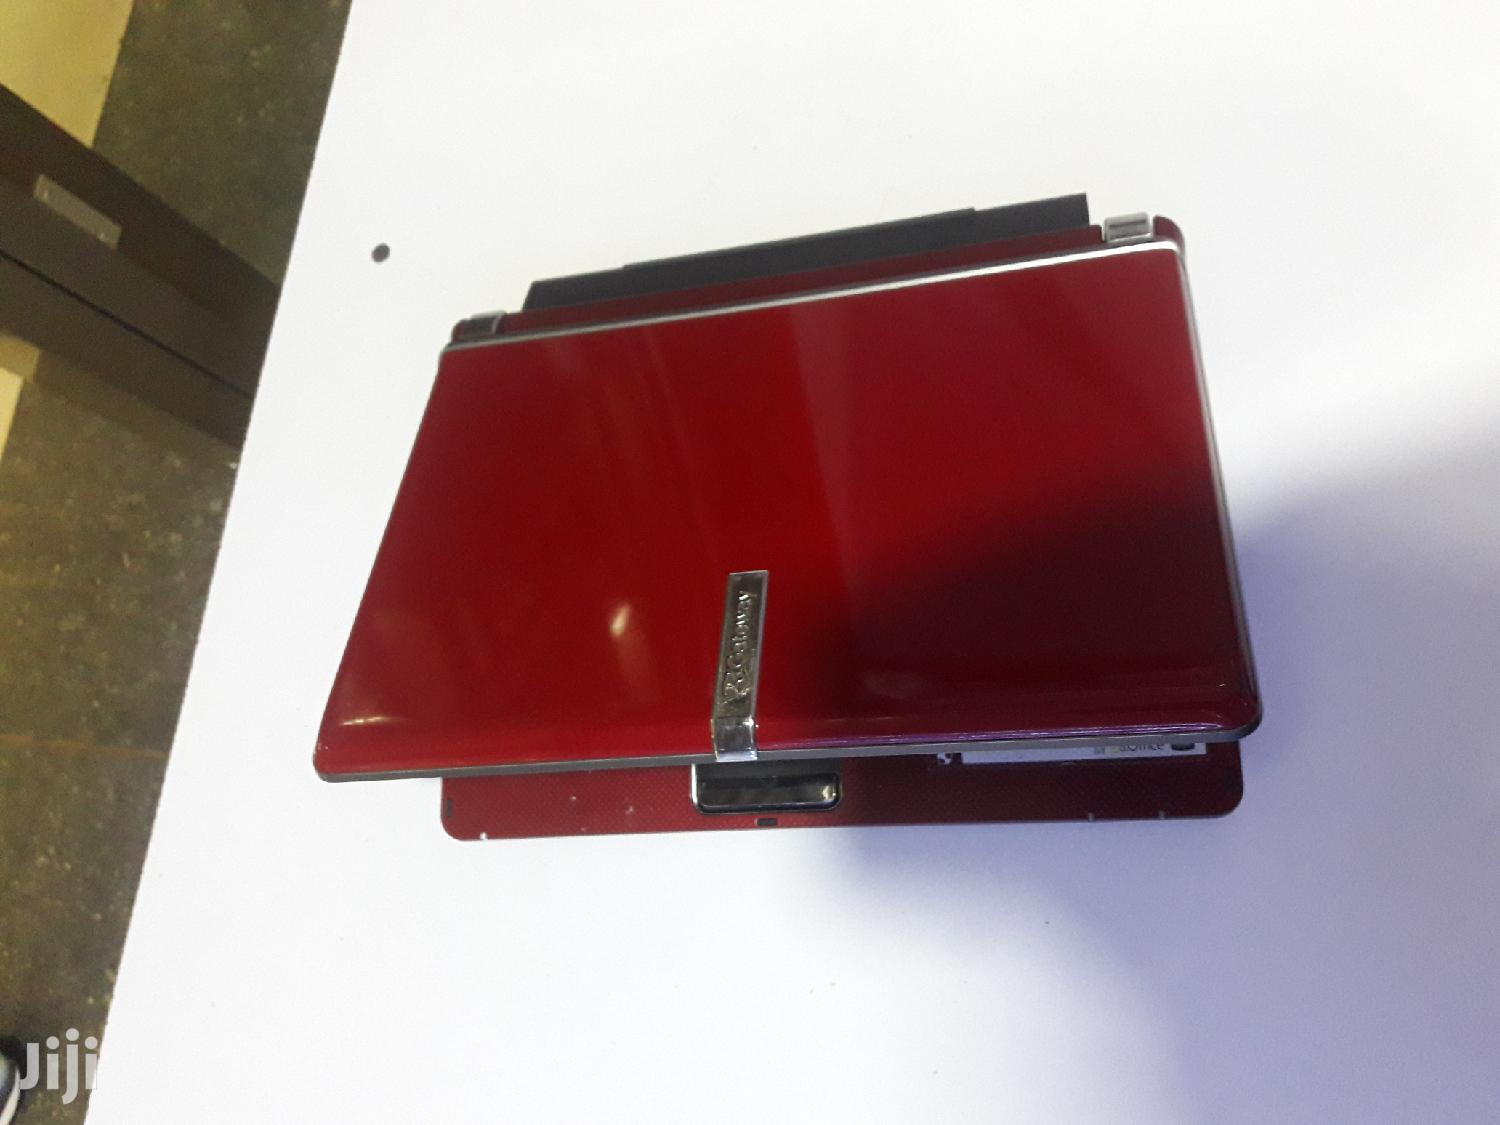 Laptop Asus A52N 2GB Intel Core M HDD 160GB   Laptops & Computers for sale in Kampala, Central Region, Uganda